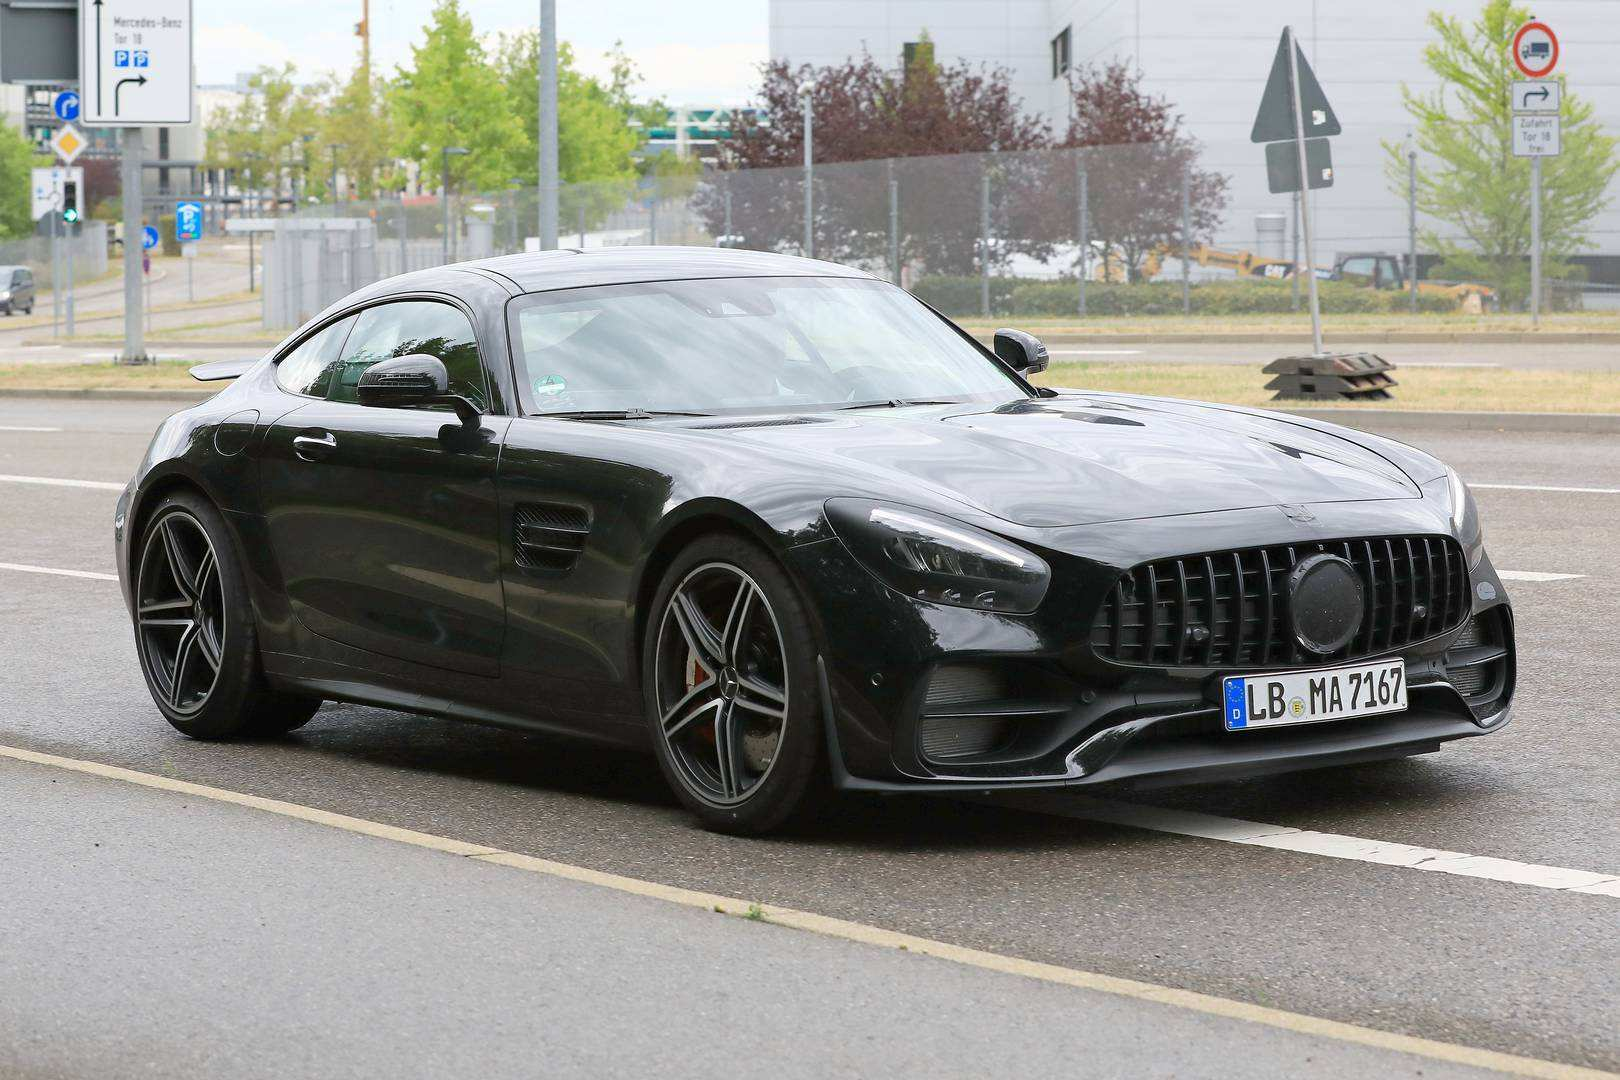 39 All New Mercedes Gt 2019 Release Date And Concept